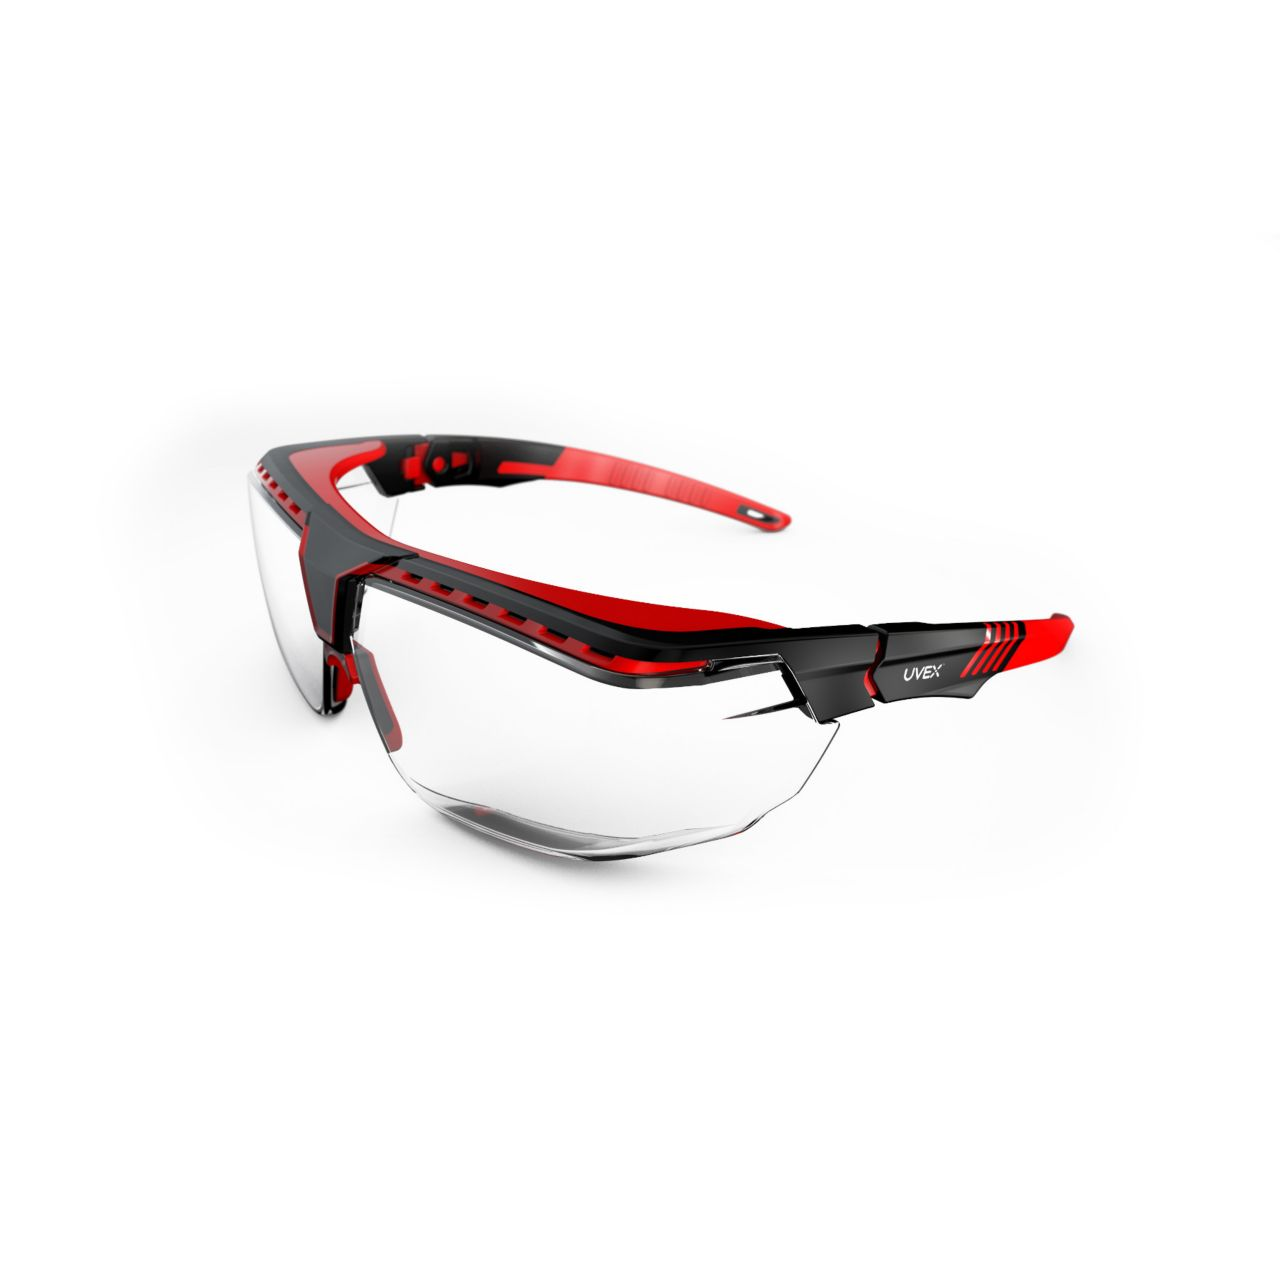 UX_uvex-avatar-otg-safety-glasses_s3851_uvex_avatar_otg_red_black_clear_wb